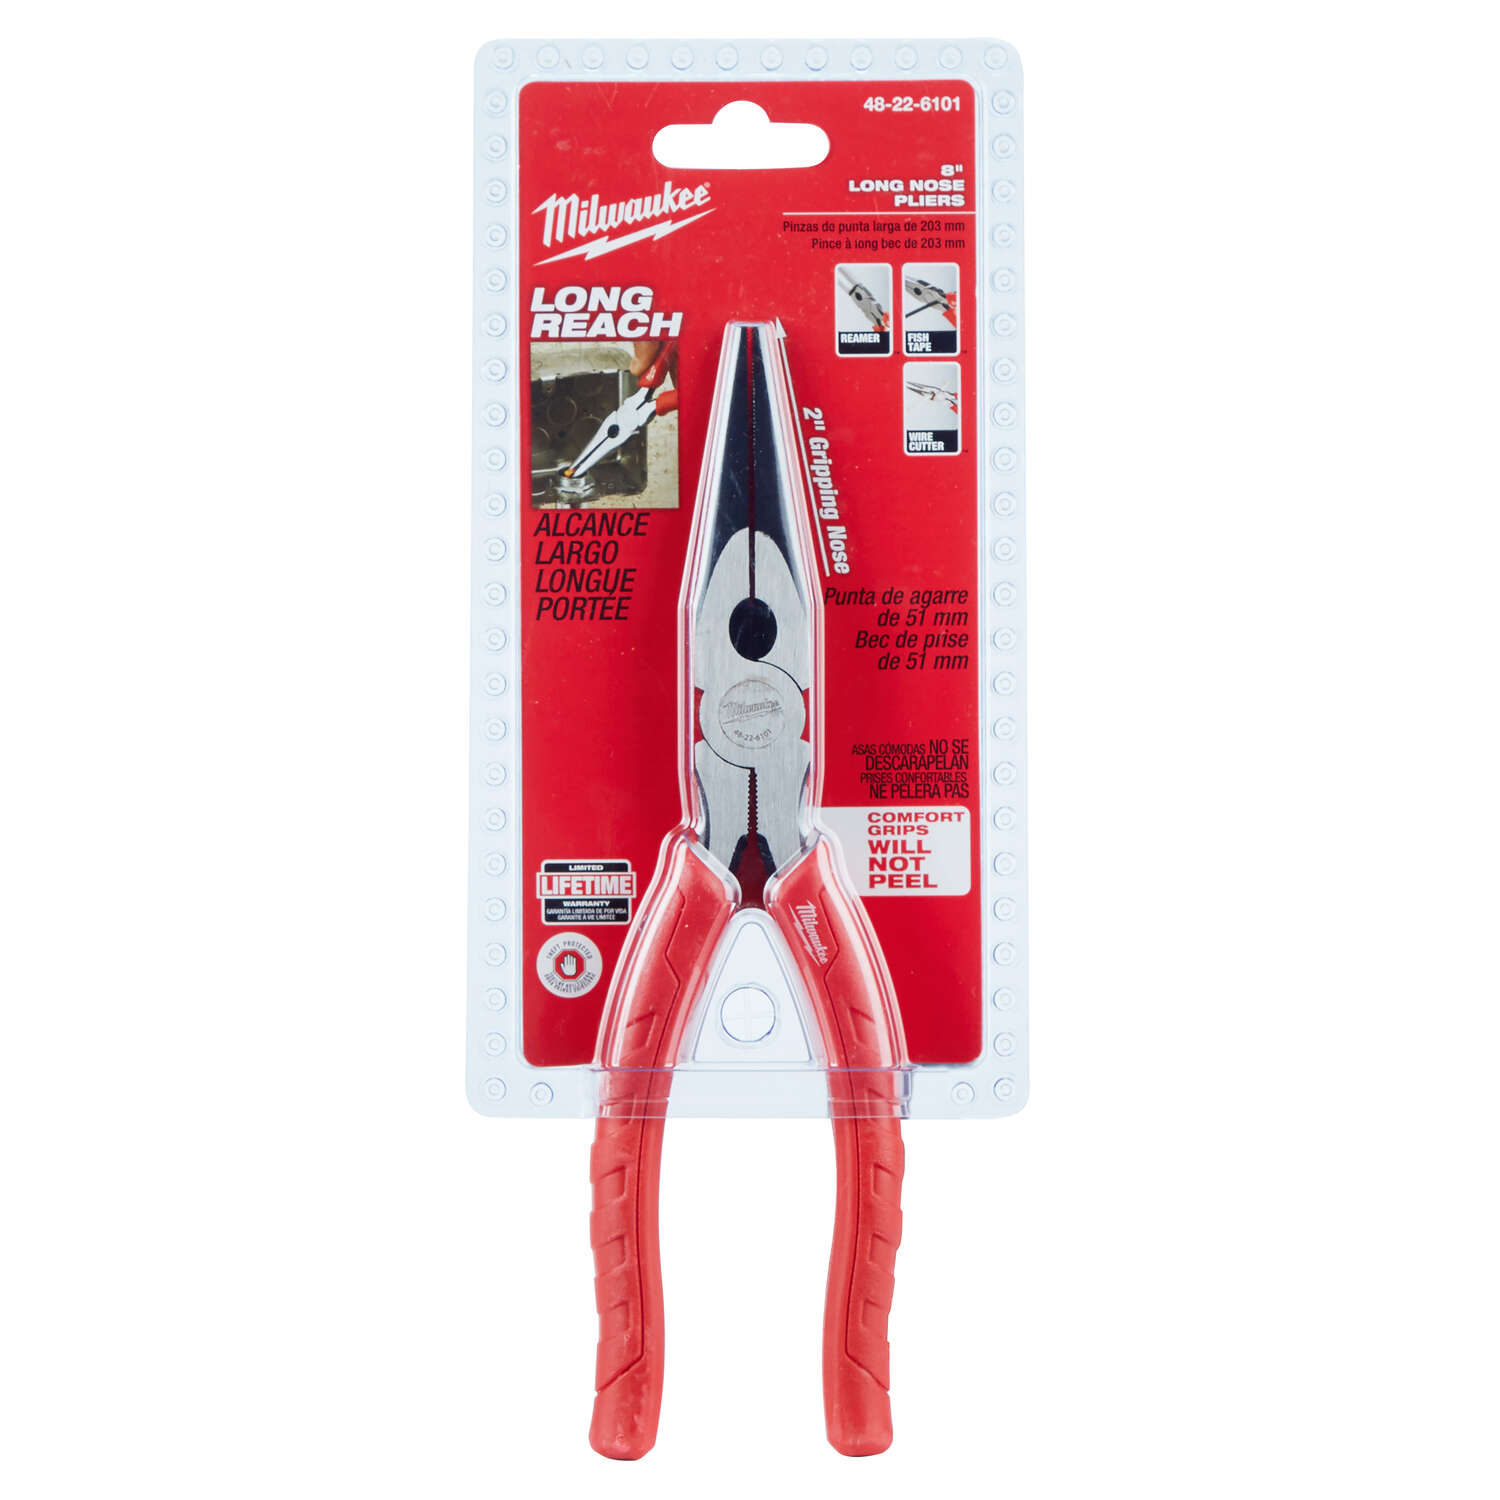 Milwaukee  8 in. Forged Alloy Steel  Long Nose Pliers  Red  1 pk